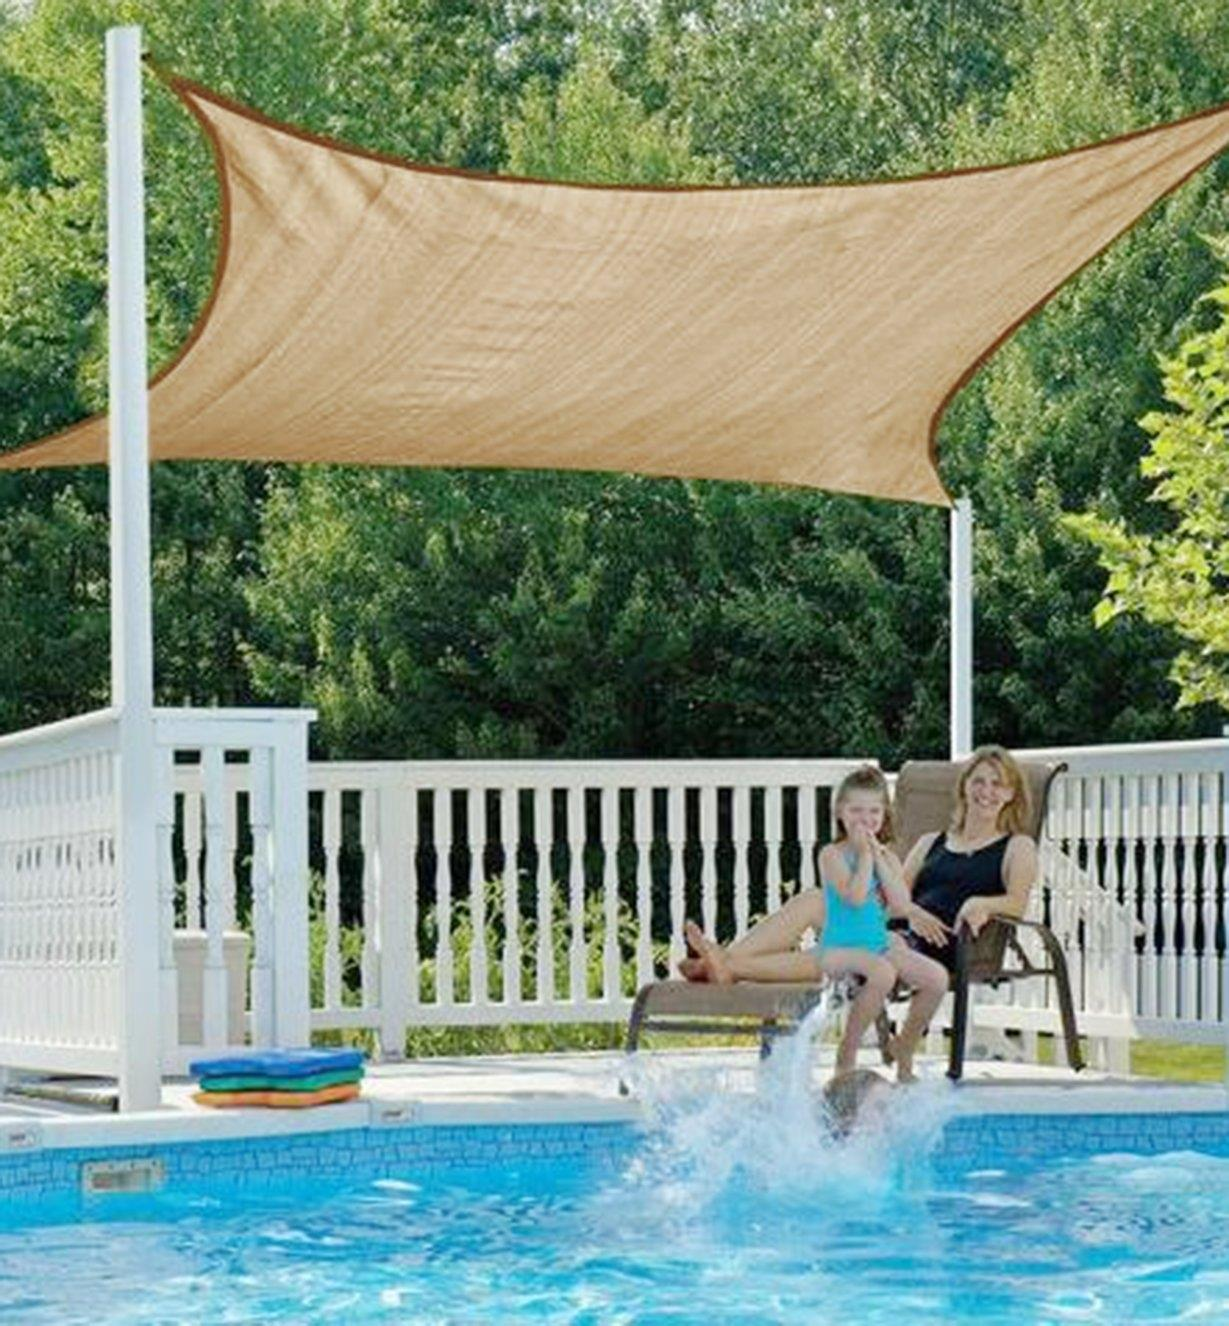 BL681 - Square Shade Sail